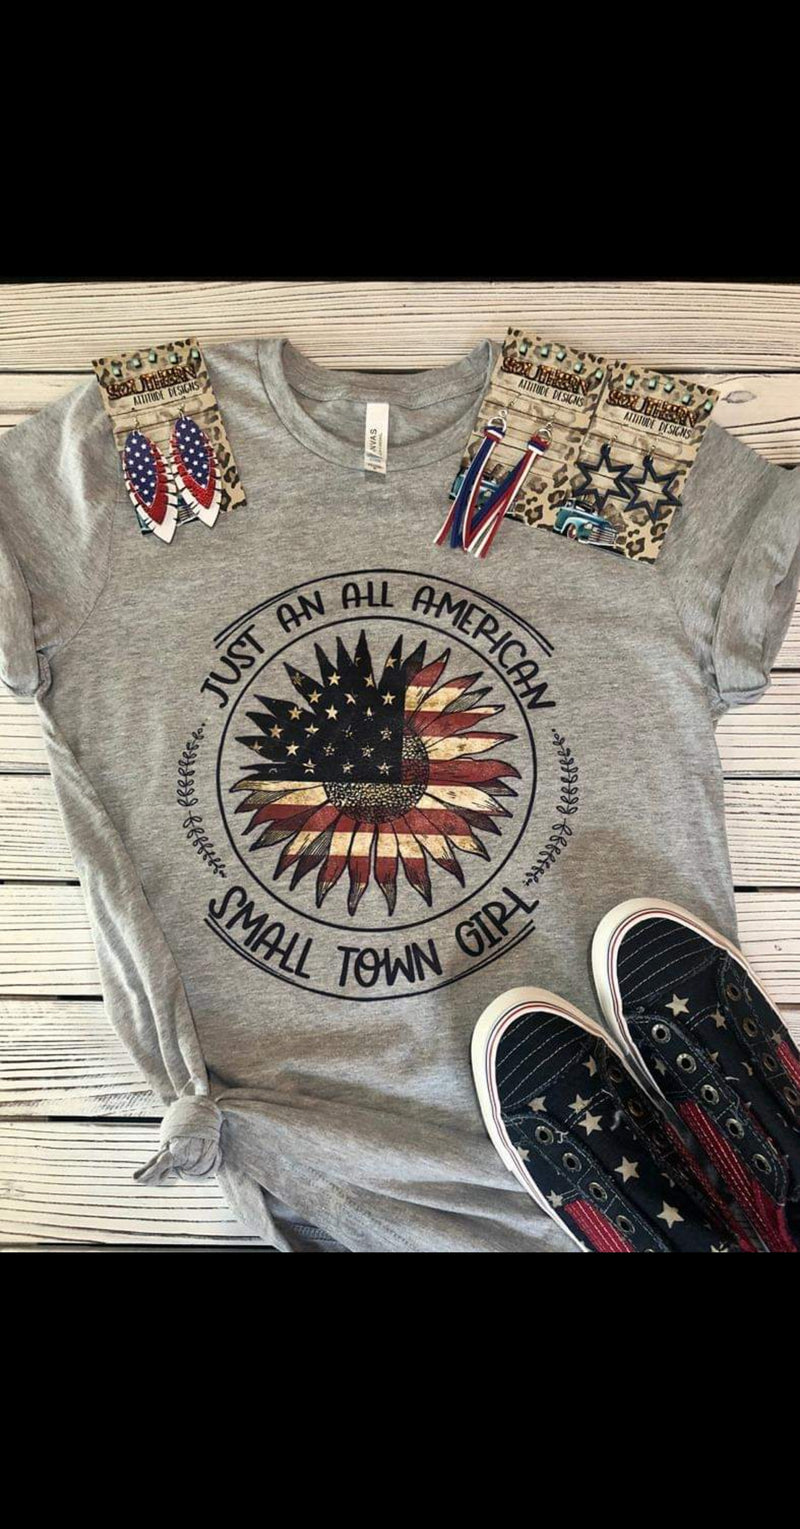 Just An All American Small Town Girl Top - Also in Plus Size